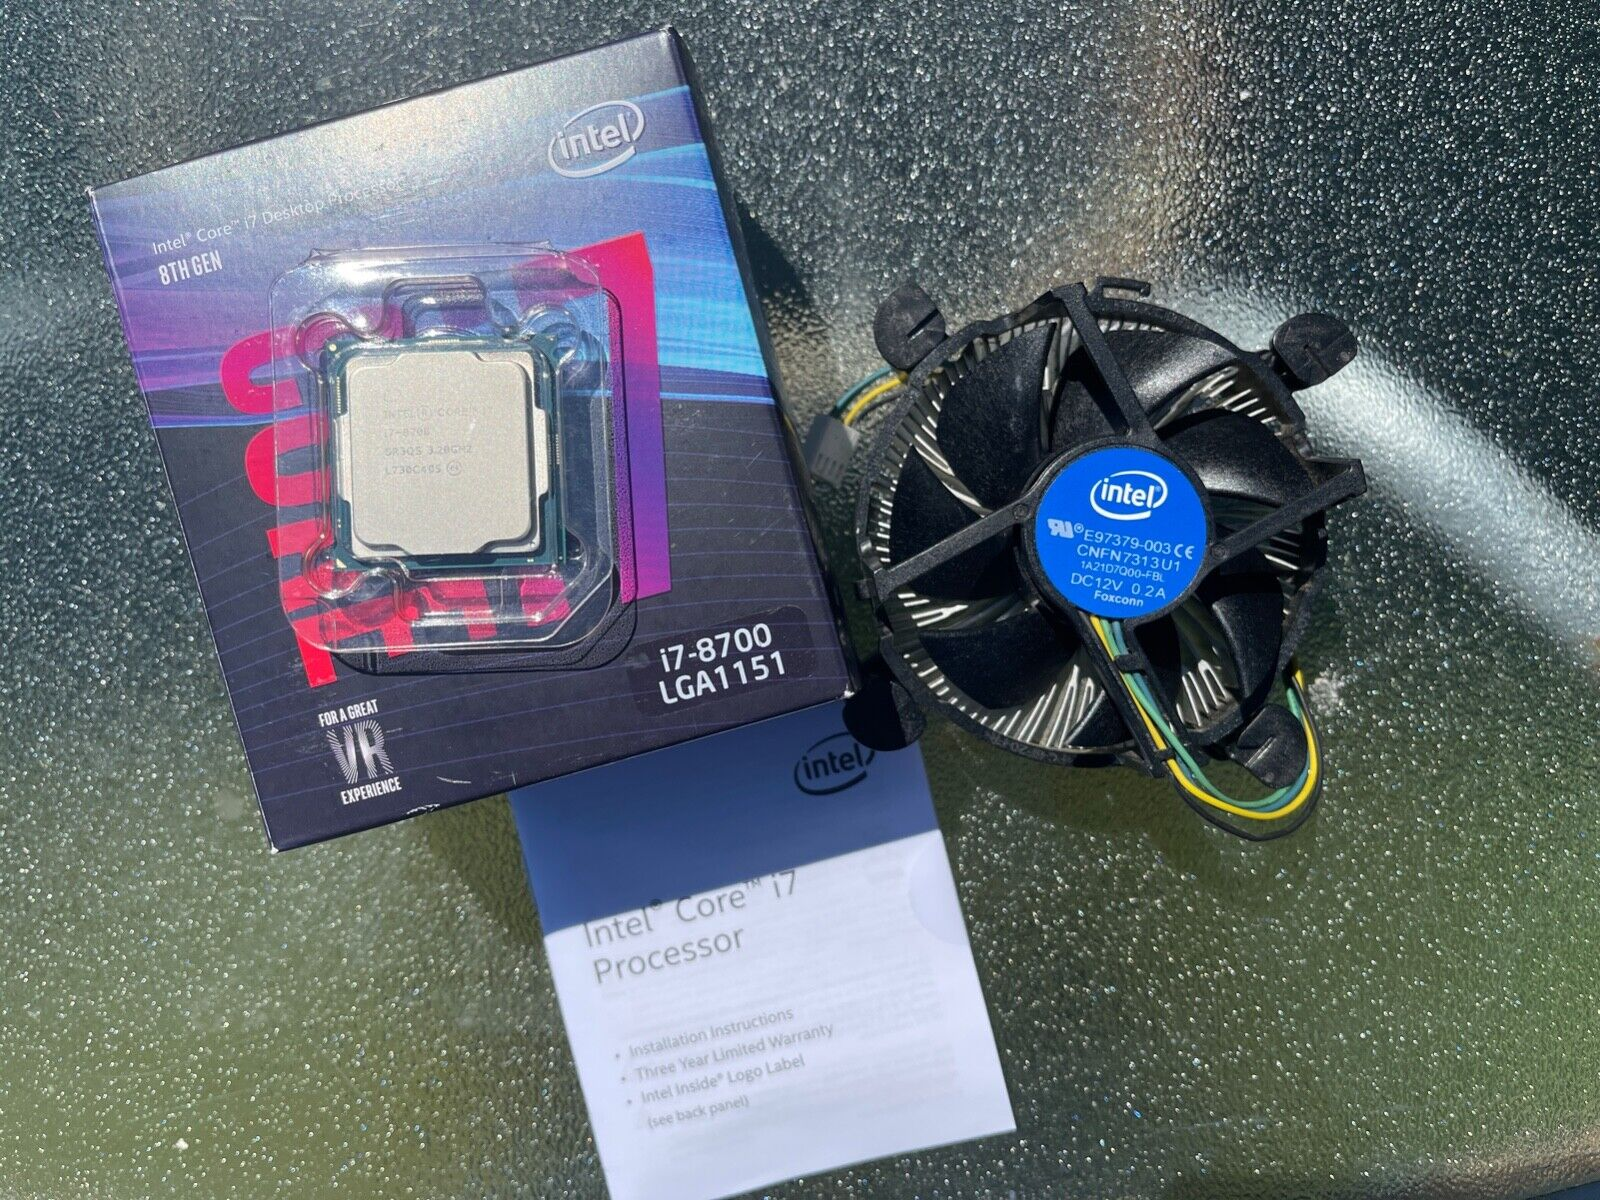 Computer Games - Intel Core i7-8700 HexaCore Processor | 3.20Ghz Computer CPU (Packed & Boxed)